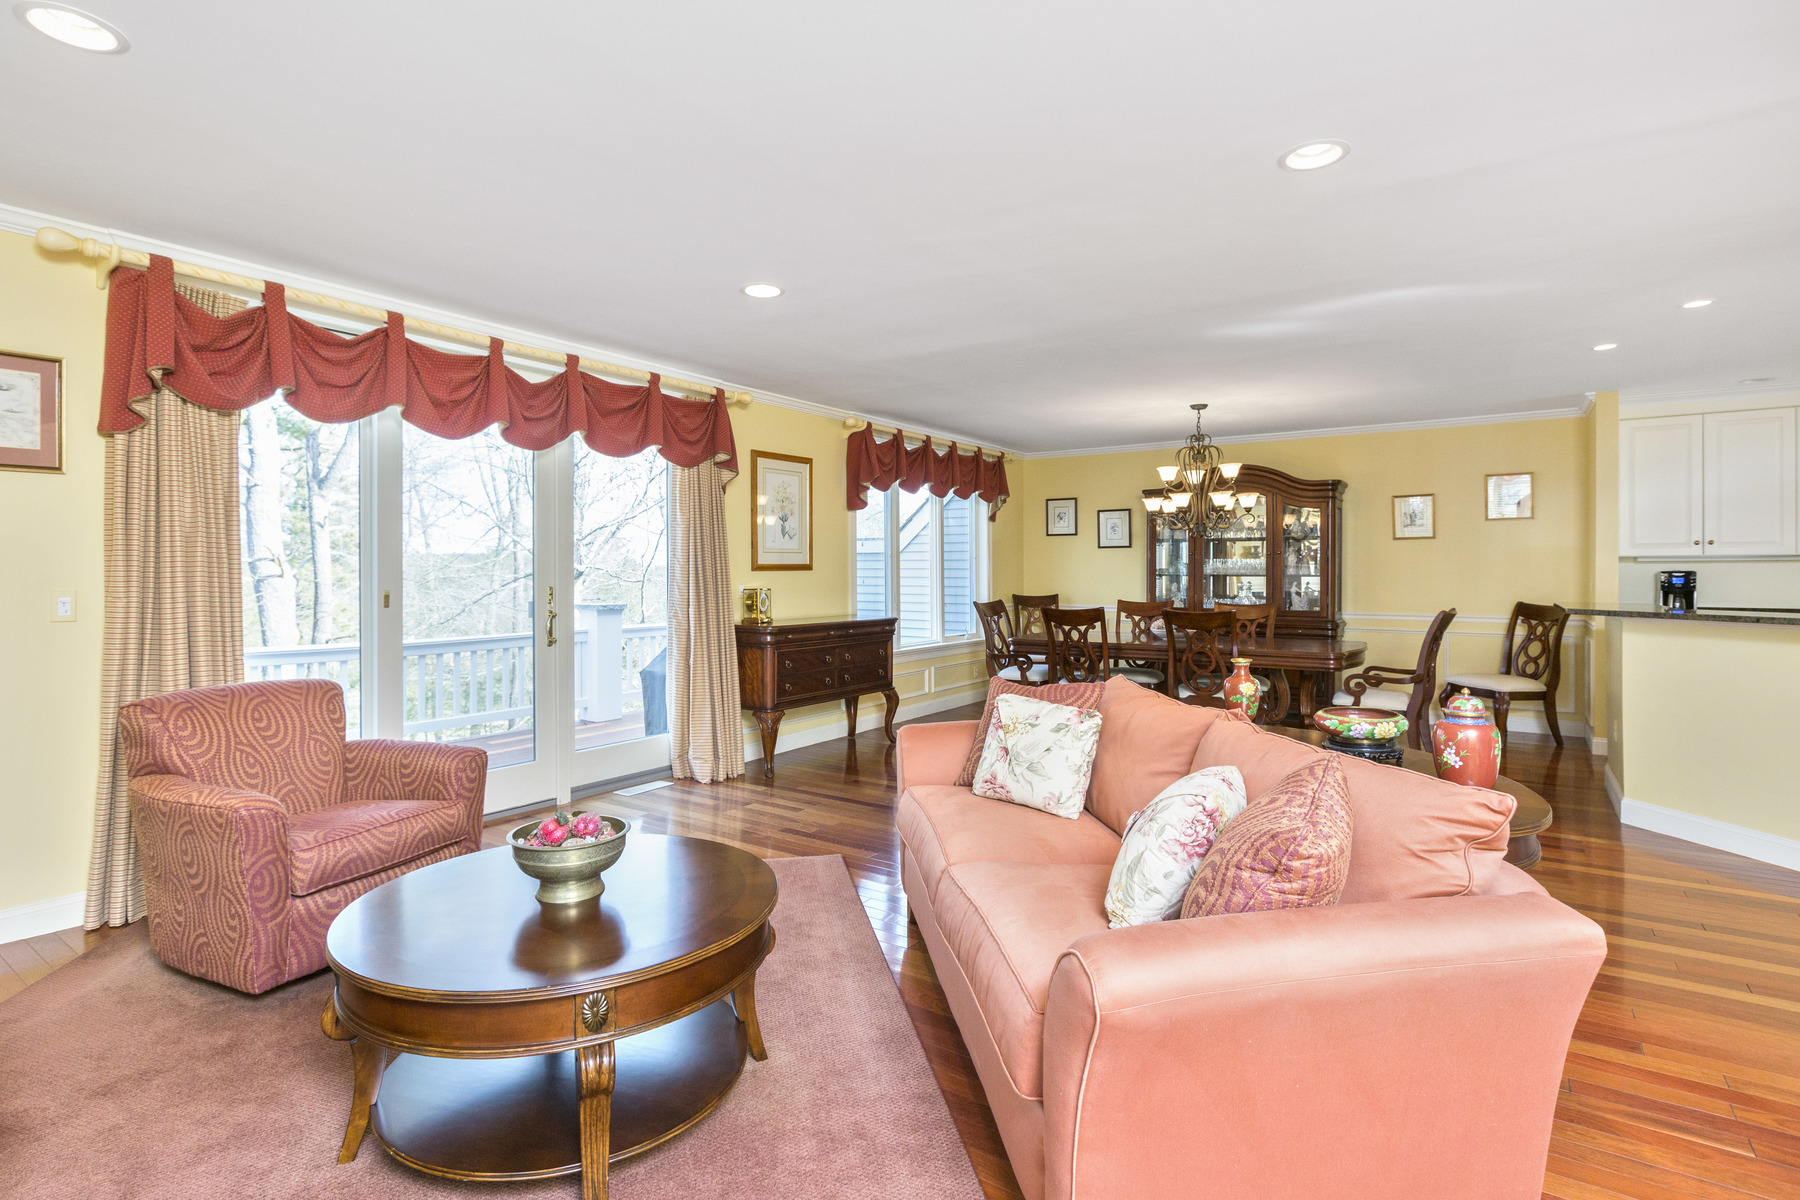 Single Family Home for Sale at Desirable Floor Plan At Ipswich Country Club 32 Highwood Lane Ipswich, Massachusetts 01938 United States